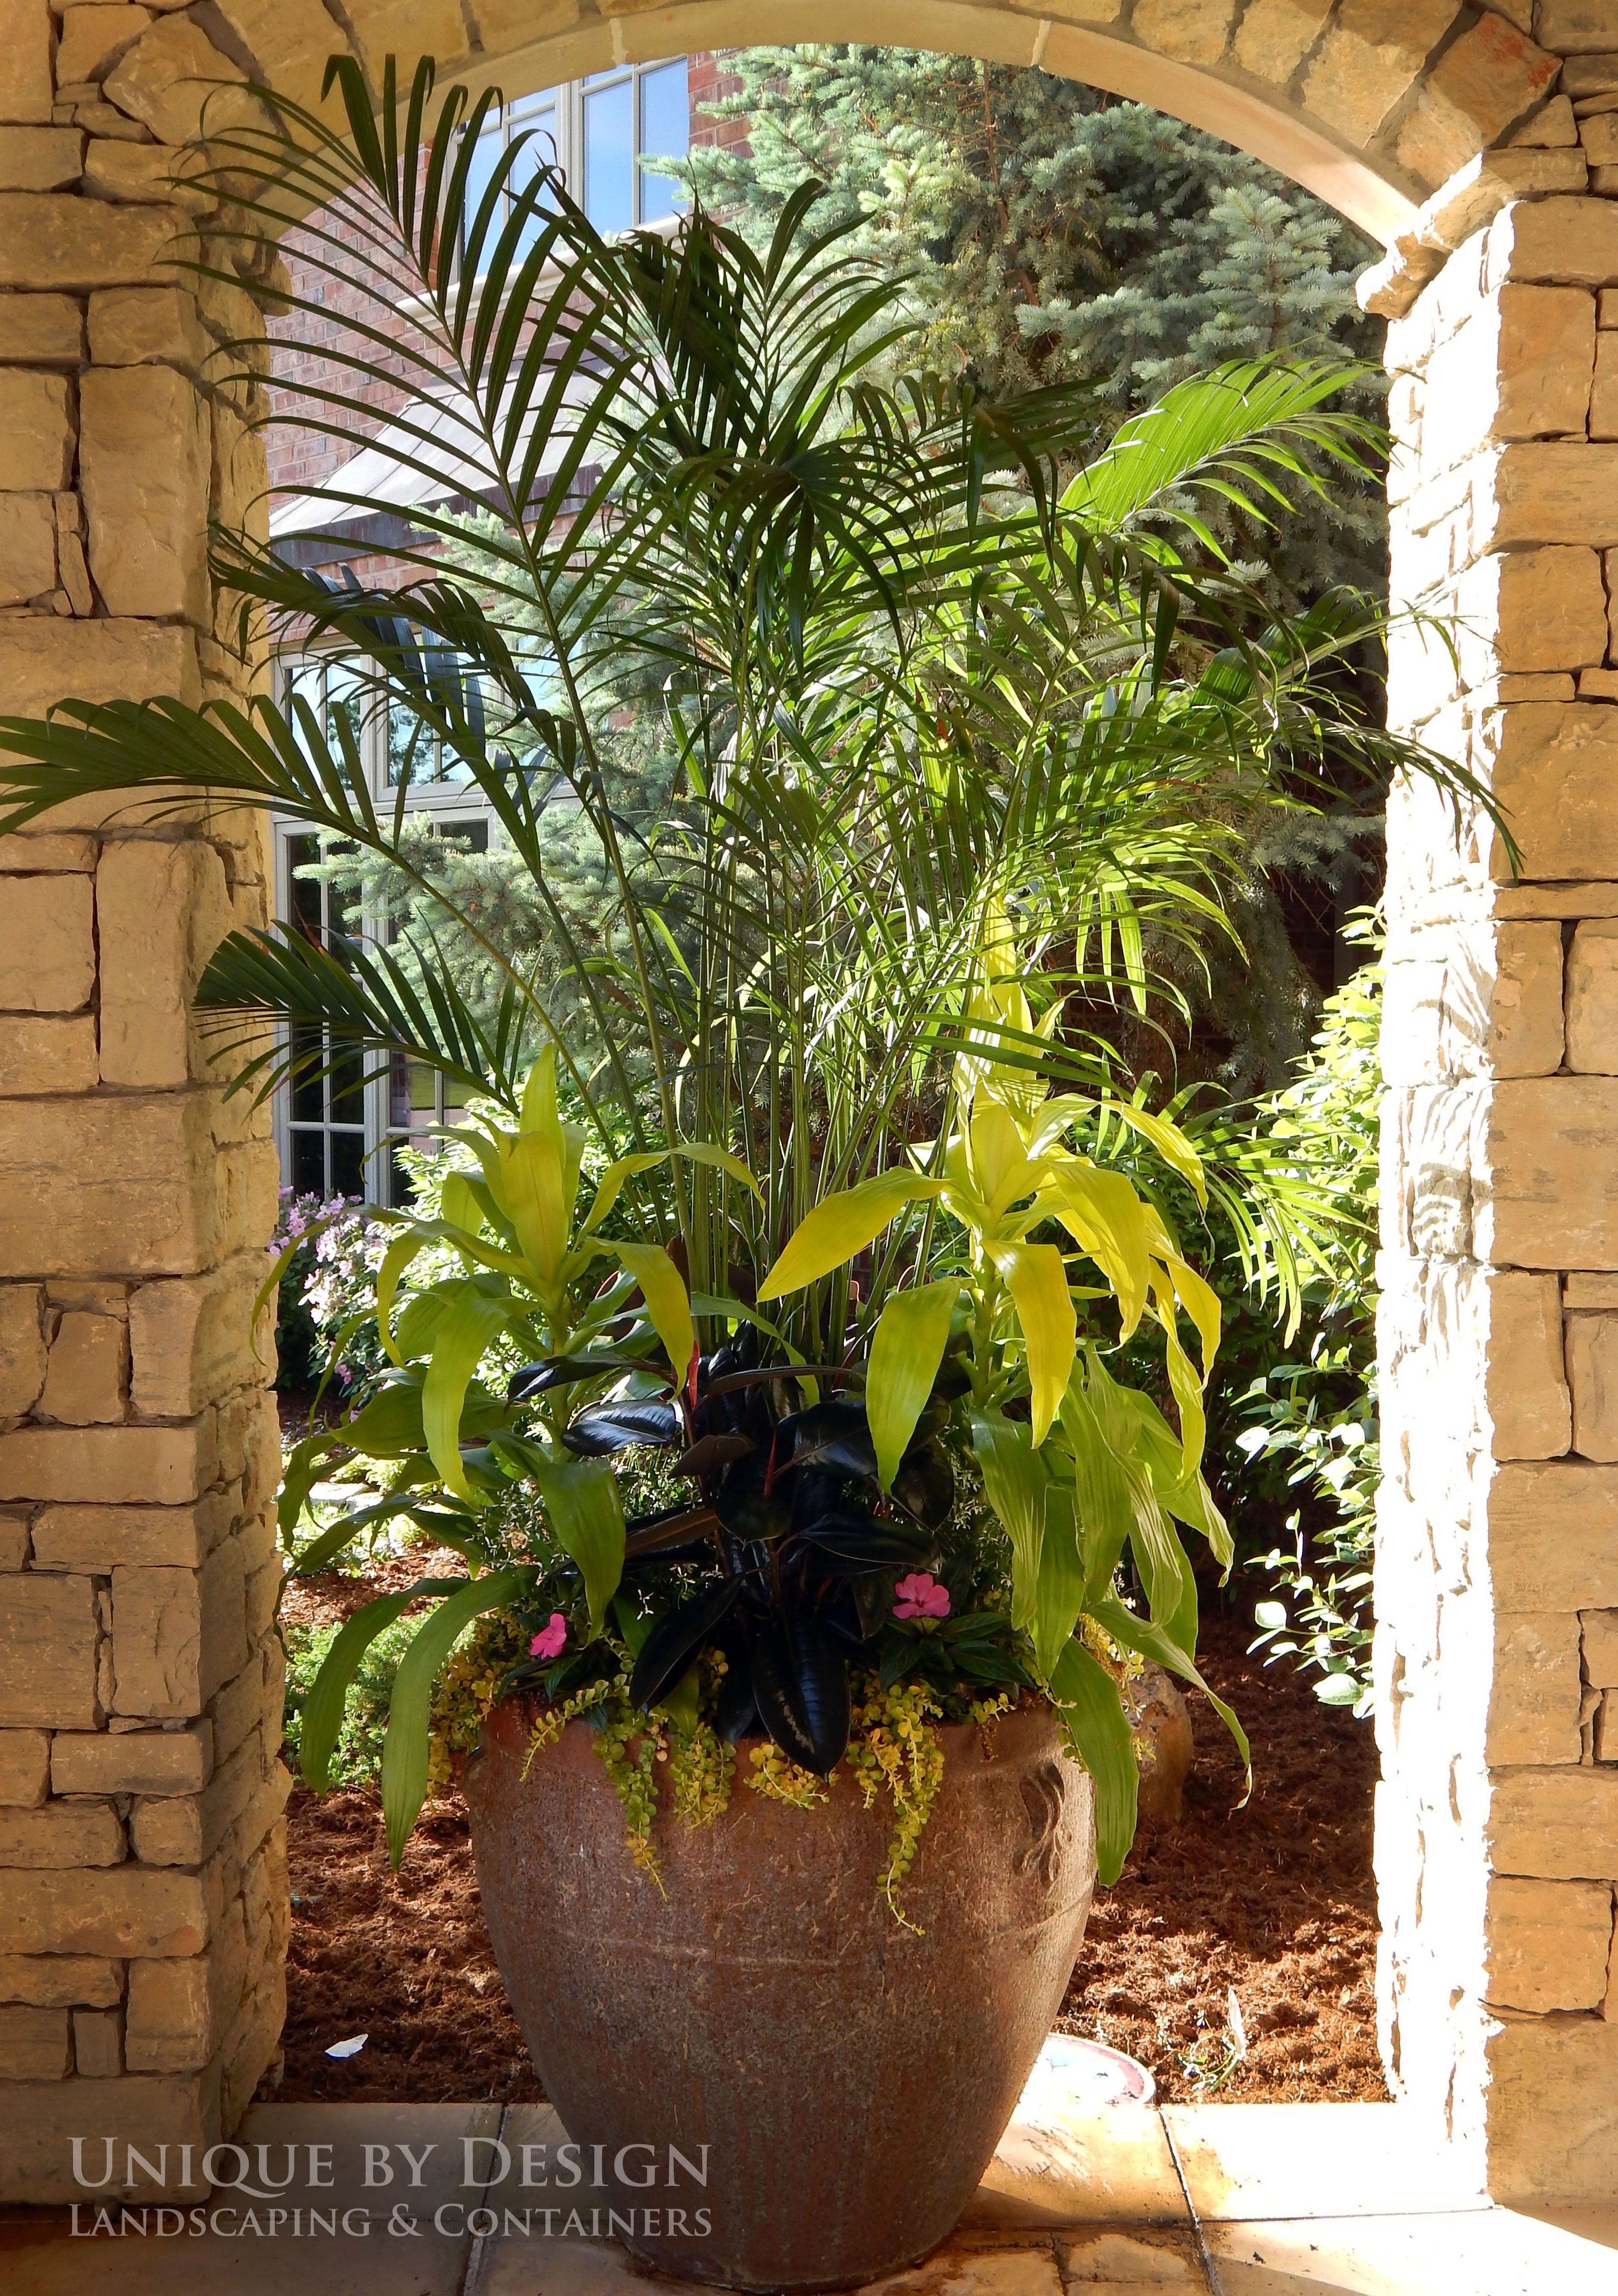 Potted Plants And The Necessary Spring Care: Unique By Design L Helen Weis